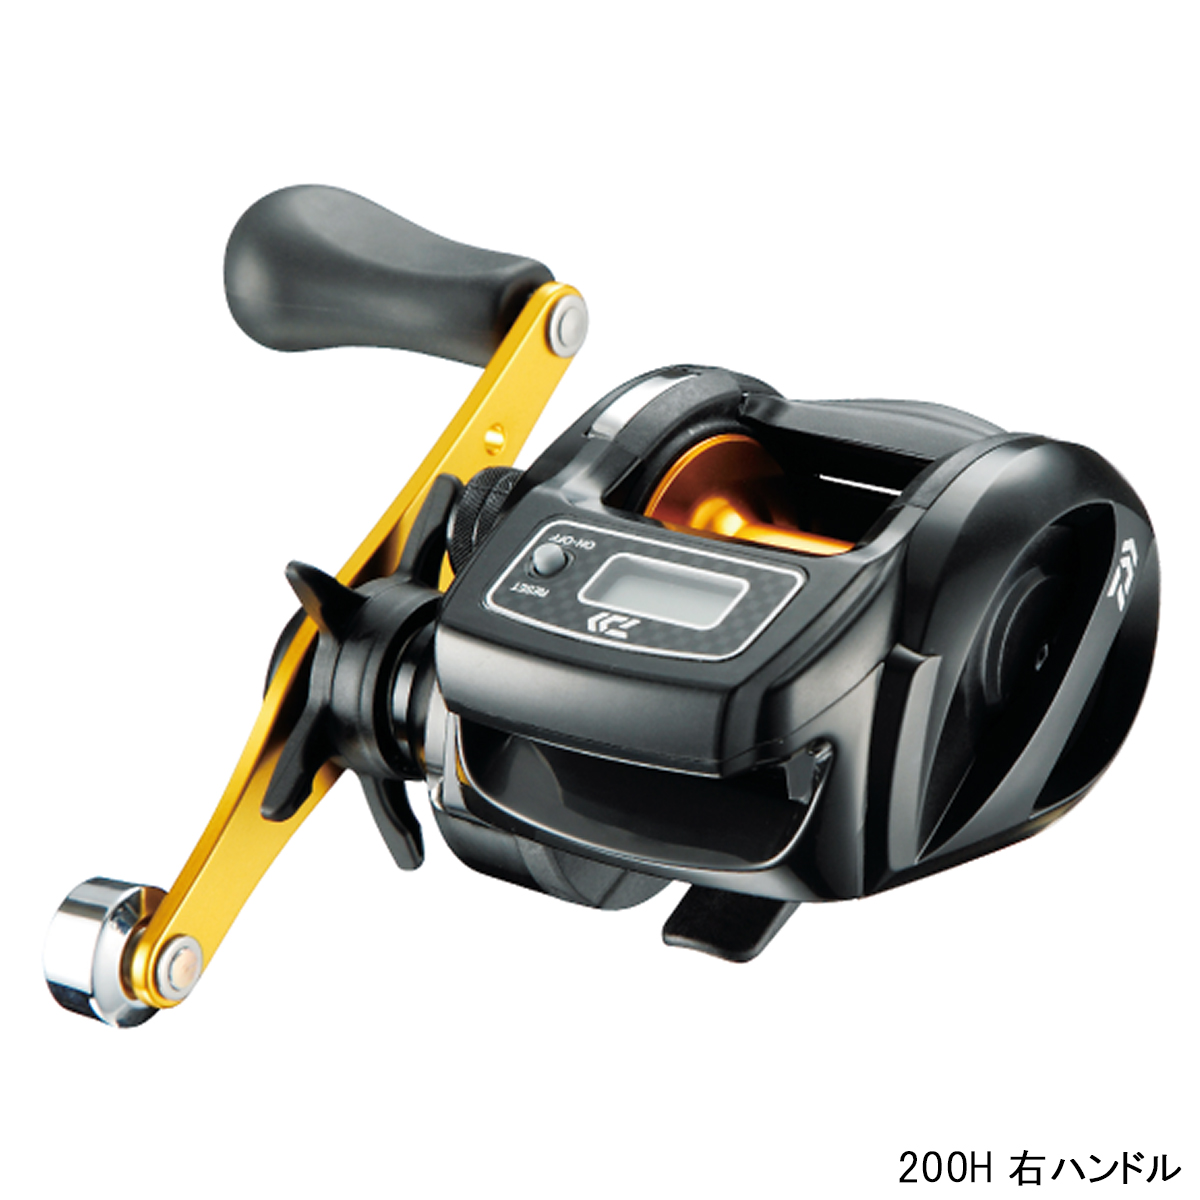 b5fa03809be Fishing Tackle Point: Daiwa light game ICV 200H right-hand drive ...